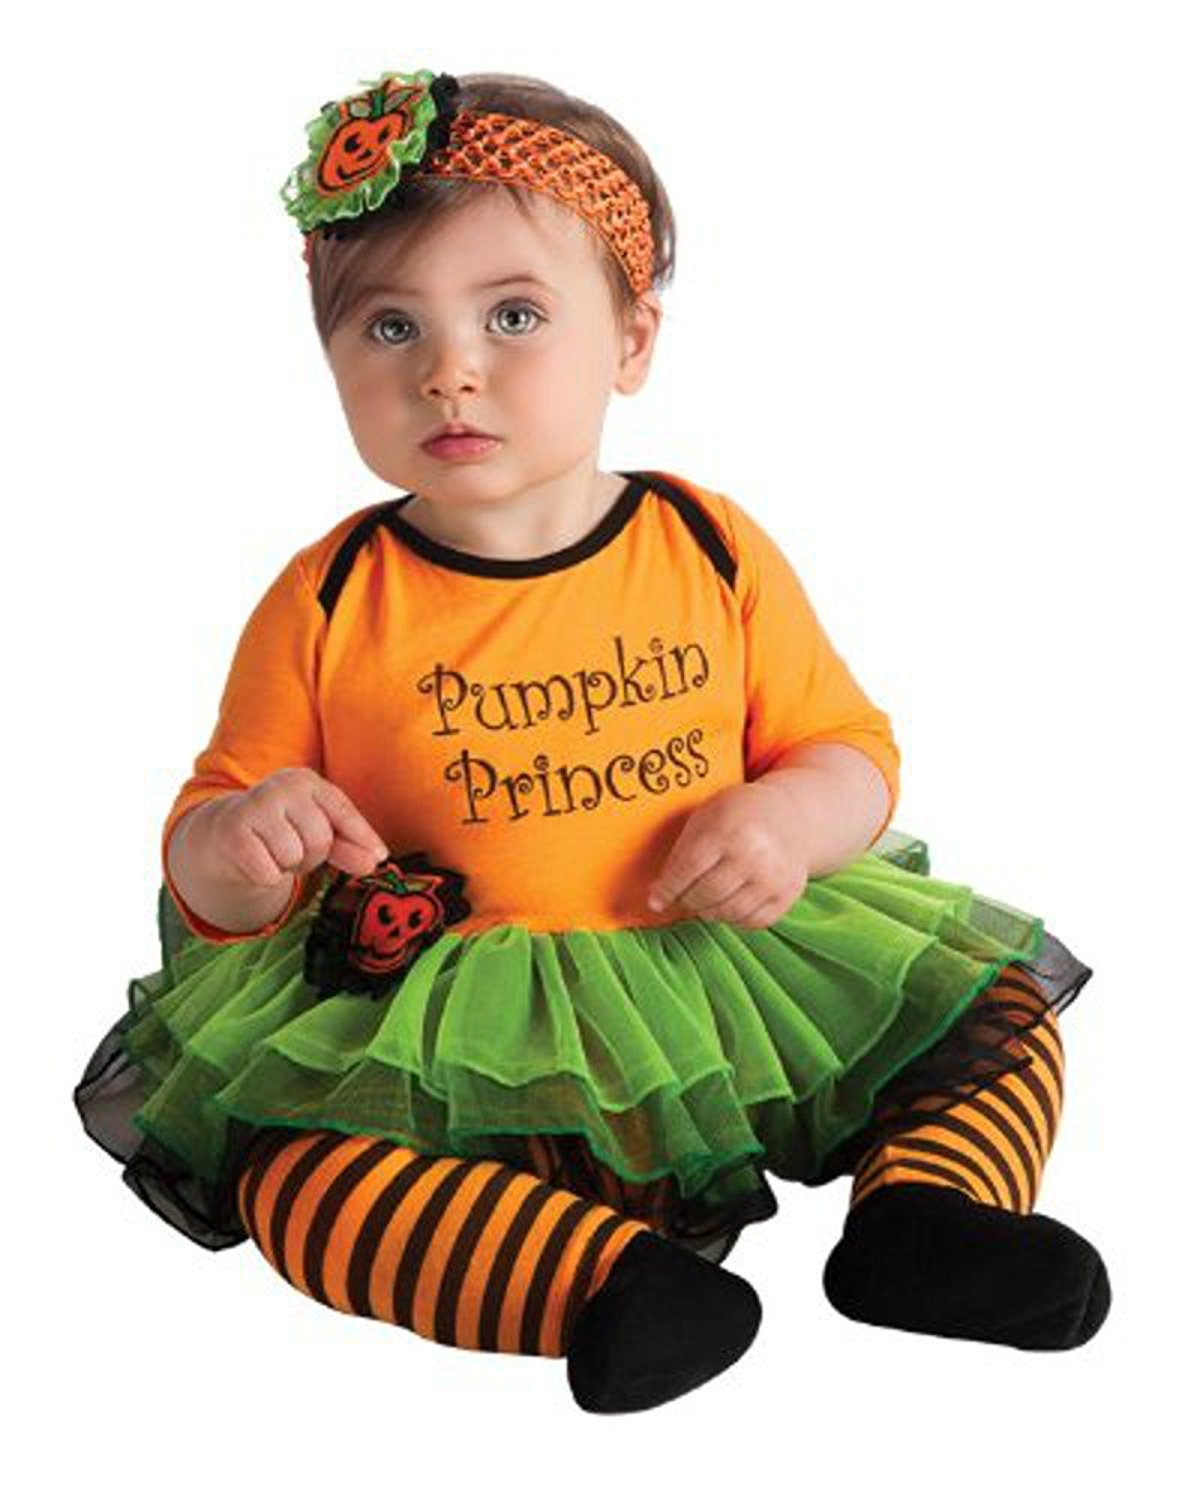 cheap baby halloween costume up, find baby halloween costume up